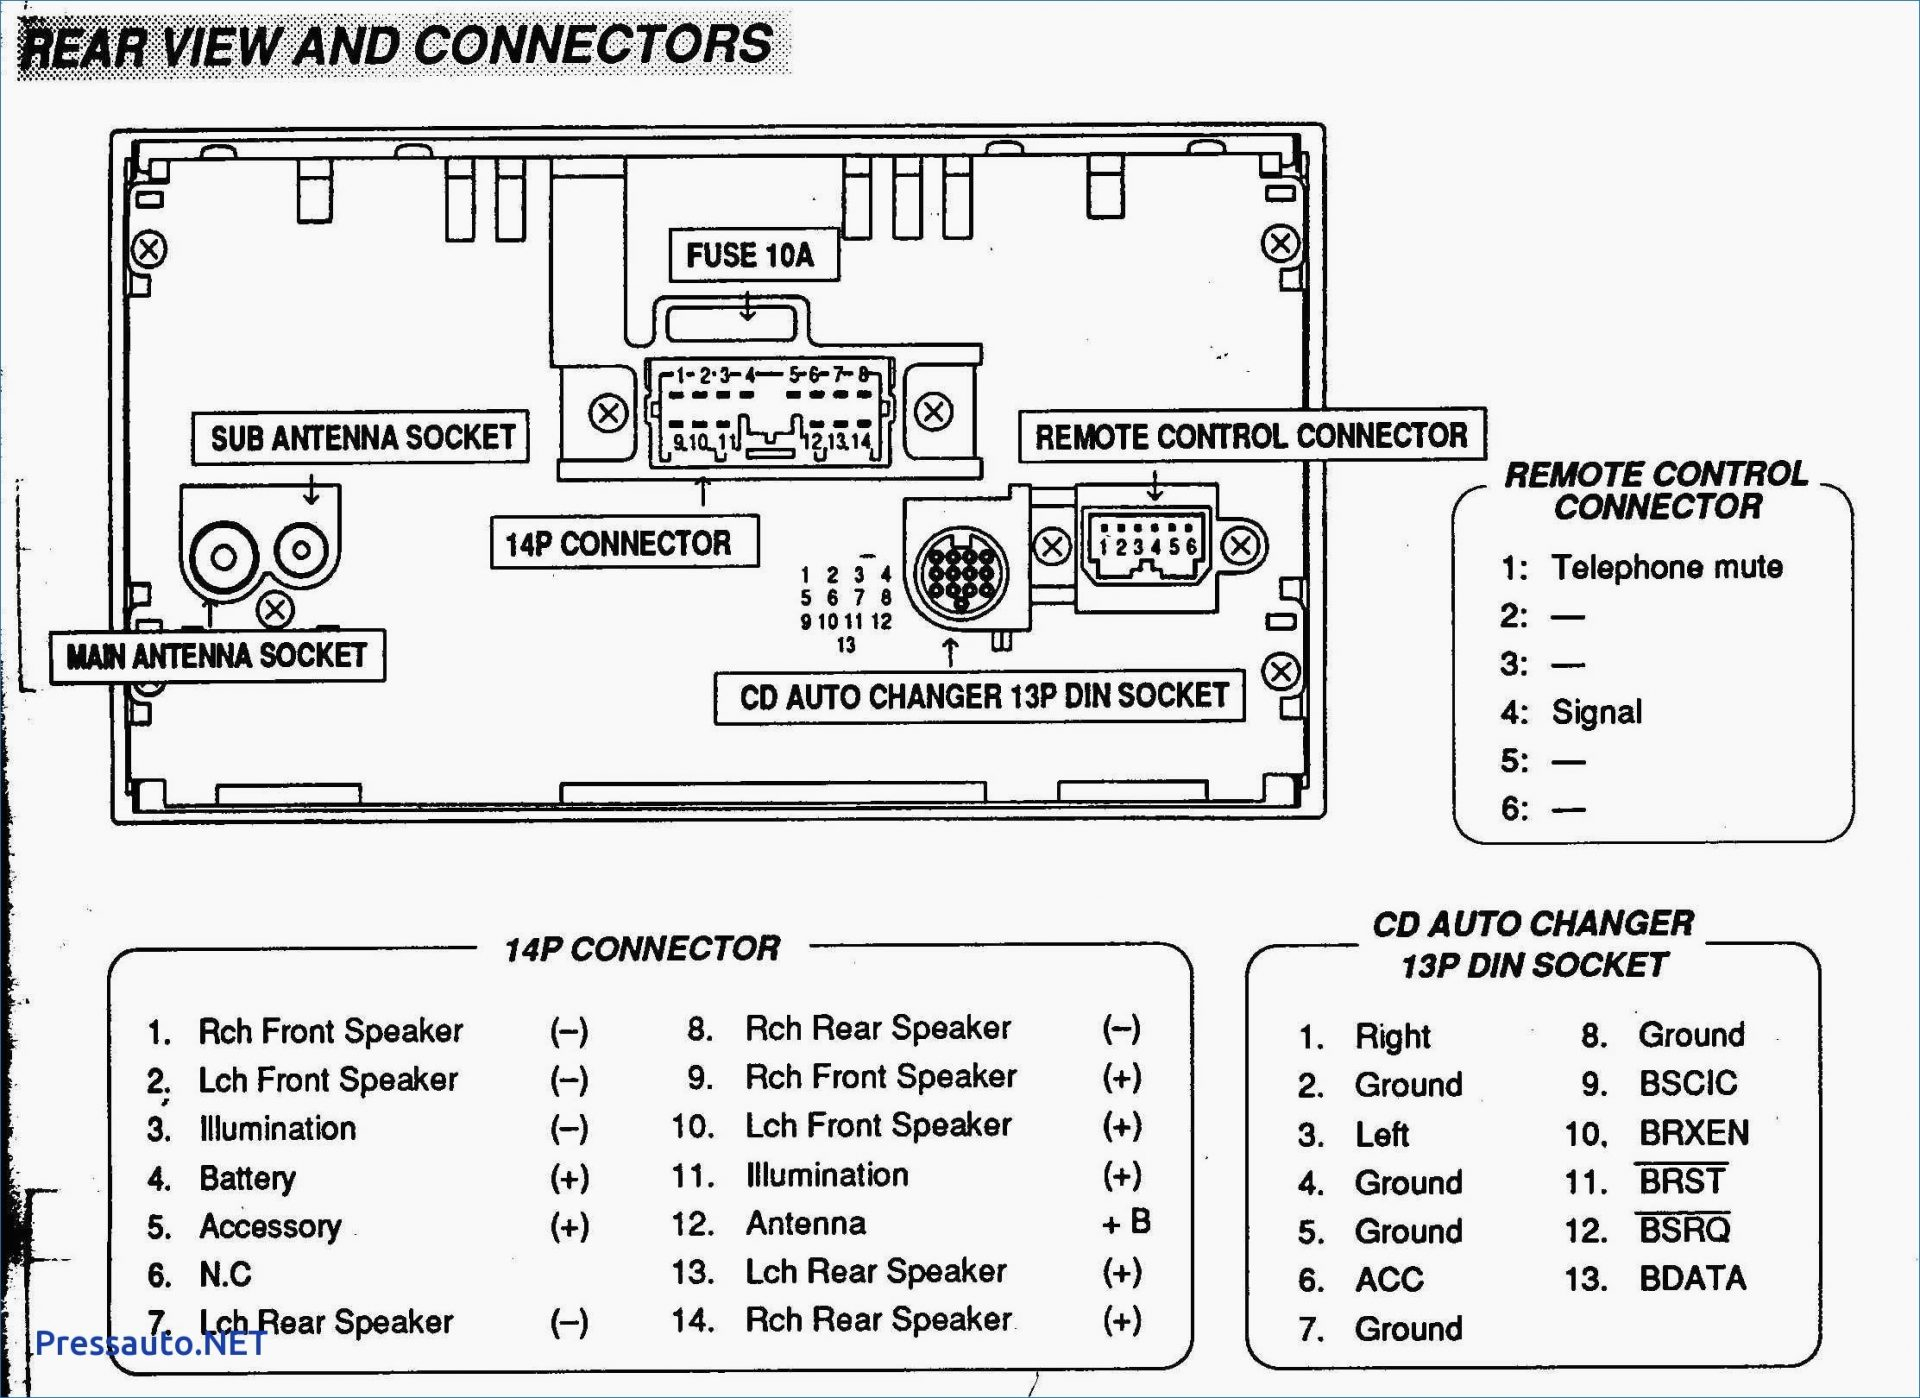 bogen paging system wiring diagram Collection-Bogen Paging System Wiring Diagram Inspirational fortable Pa Speaker Wiring Diagrams Electrical Circuit 18-d